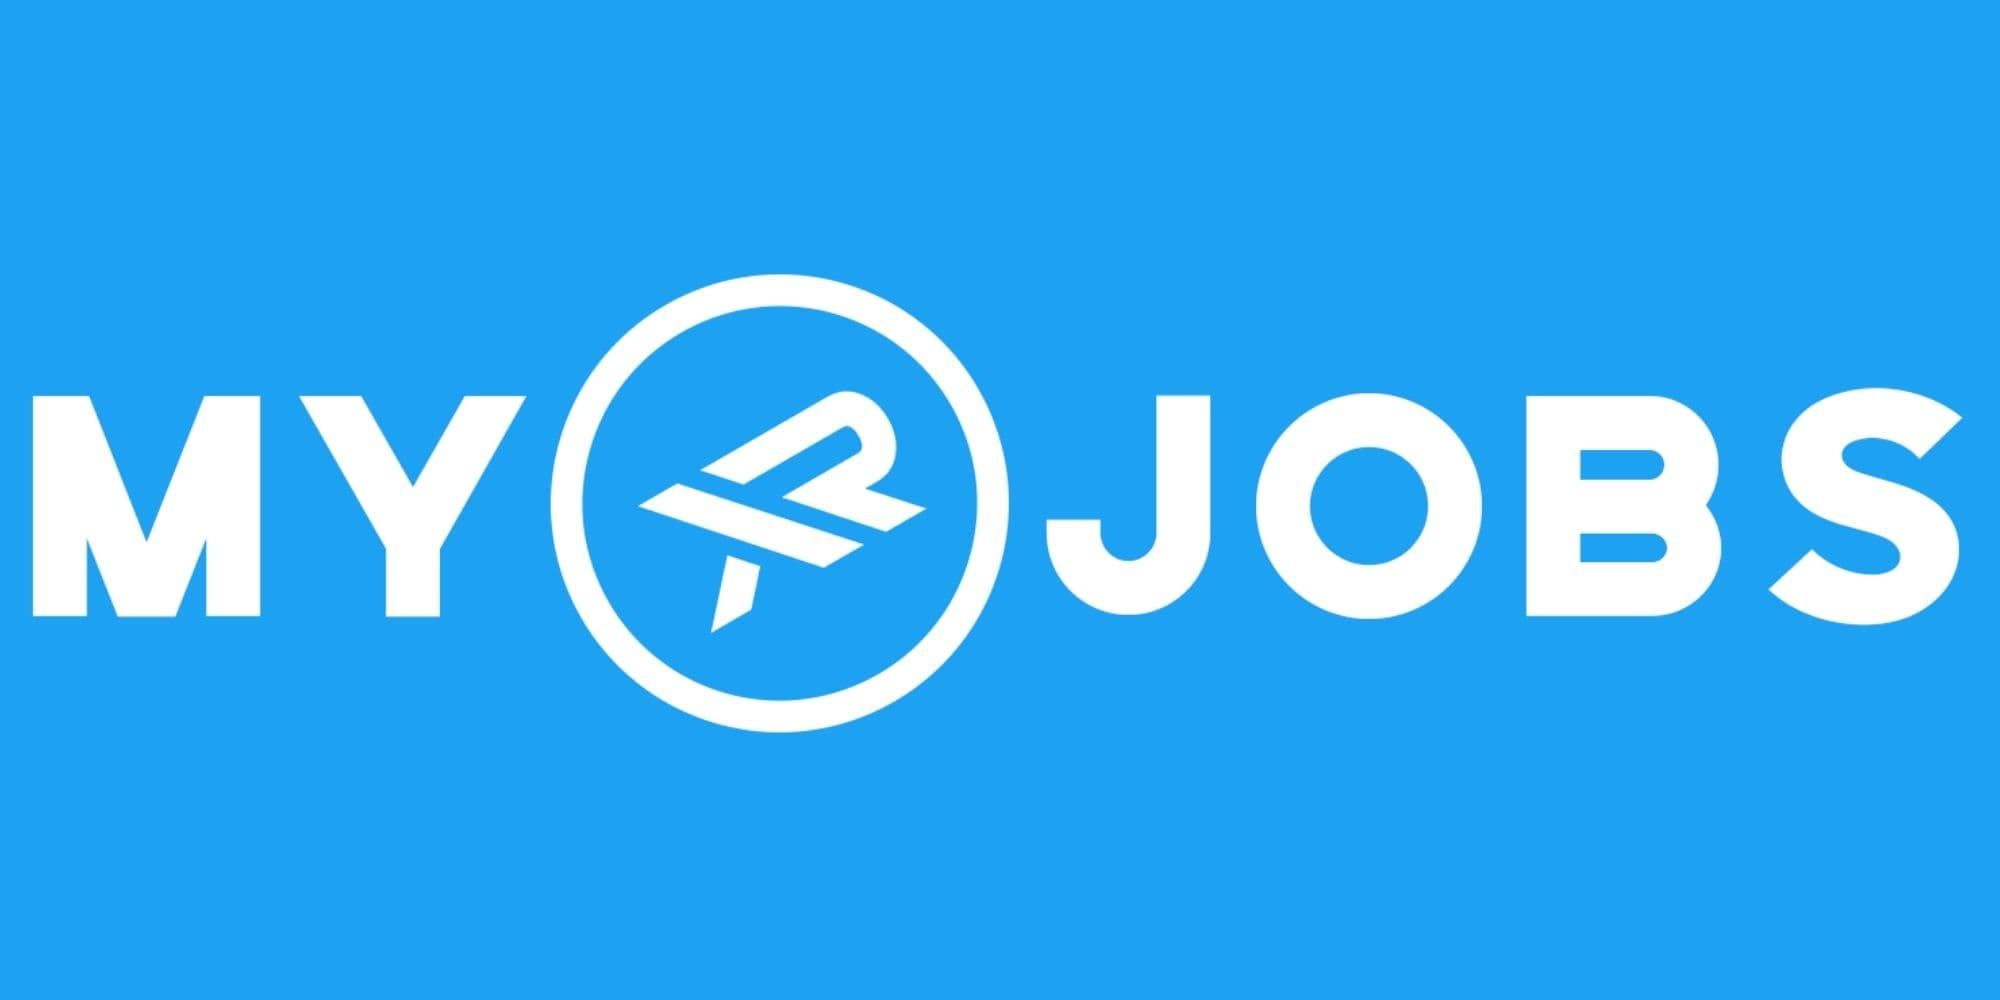 Where to look for XR Jobs